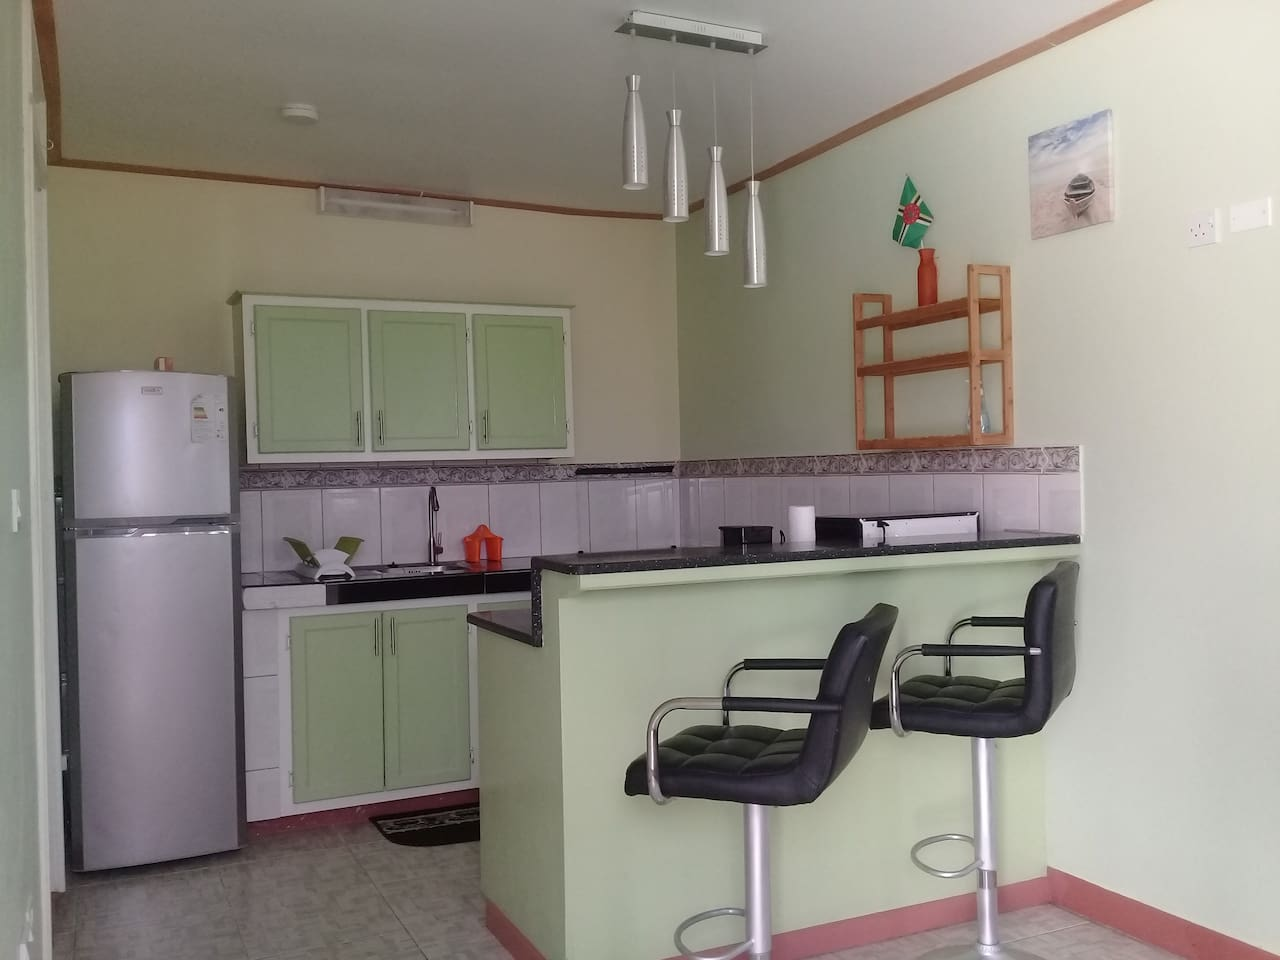 Enjoy your favourite meal in our well equipped  kitchen.  Windsor Apartment, a cozy ground floor apartment, is located in a quiet area in the community of Goodwill.  Enjoy the ambience of a peaceful environment minutes away from the capital city.